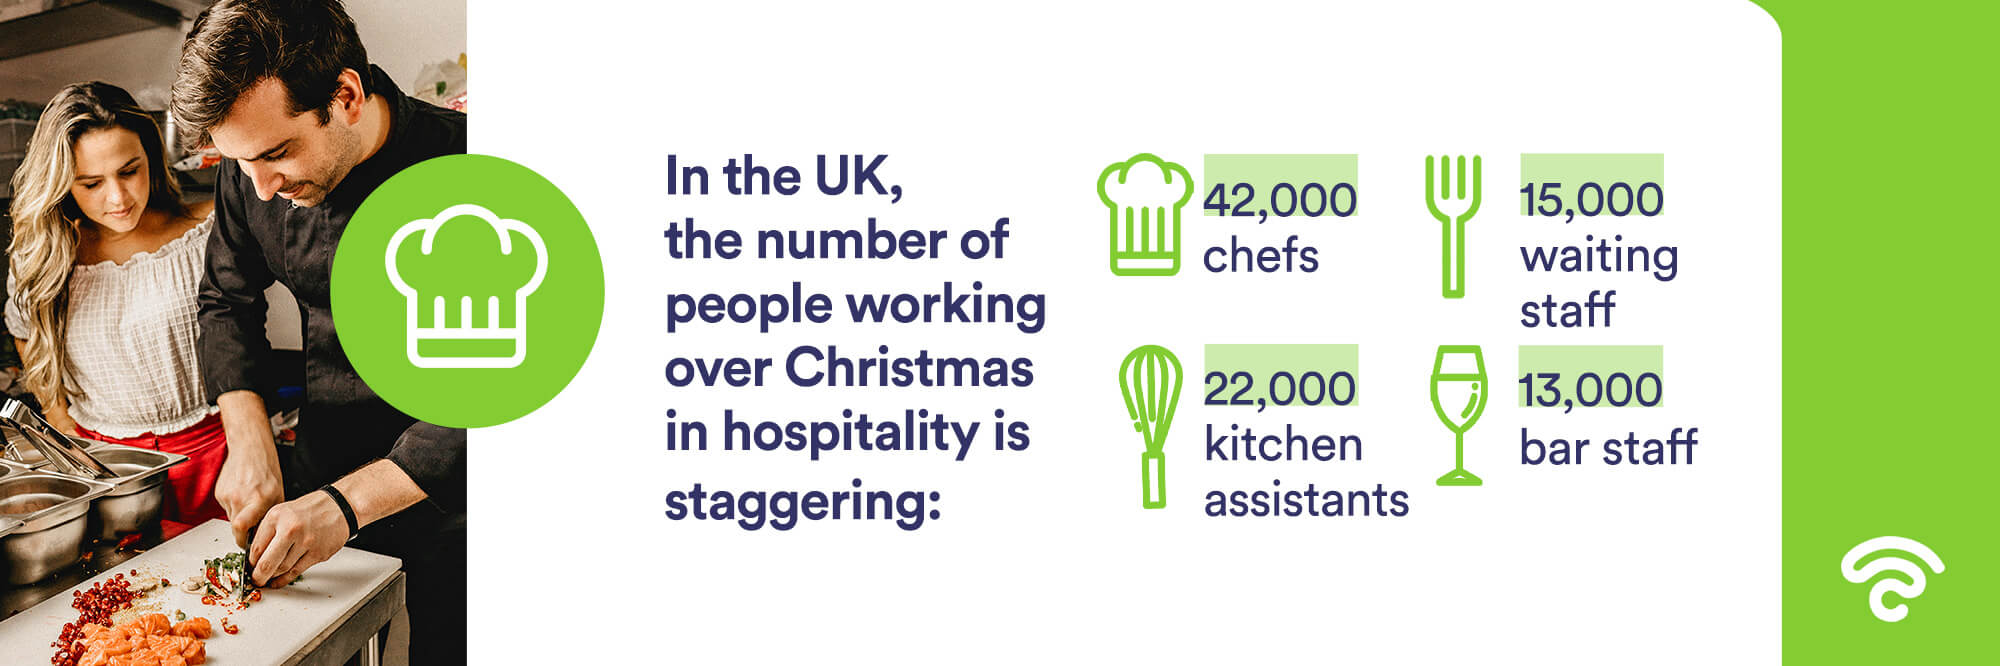 Number of people working in hospitality over Christmas